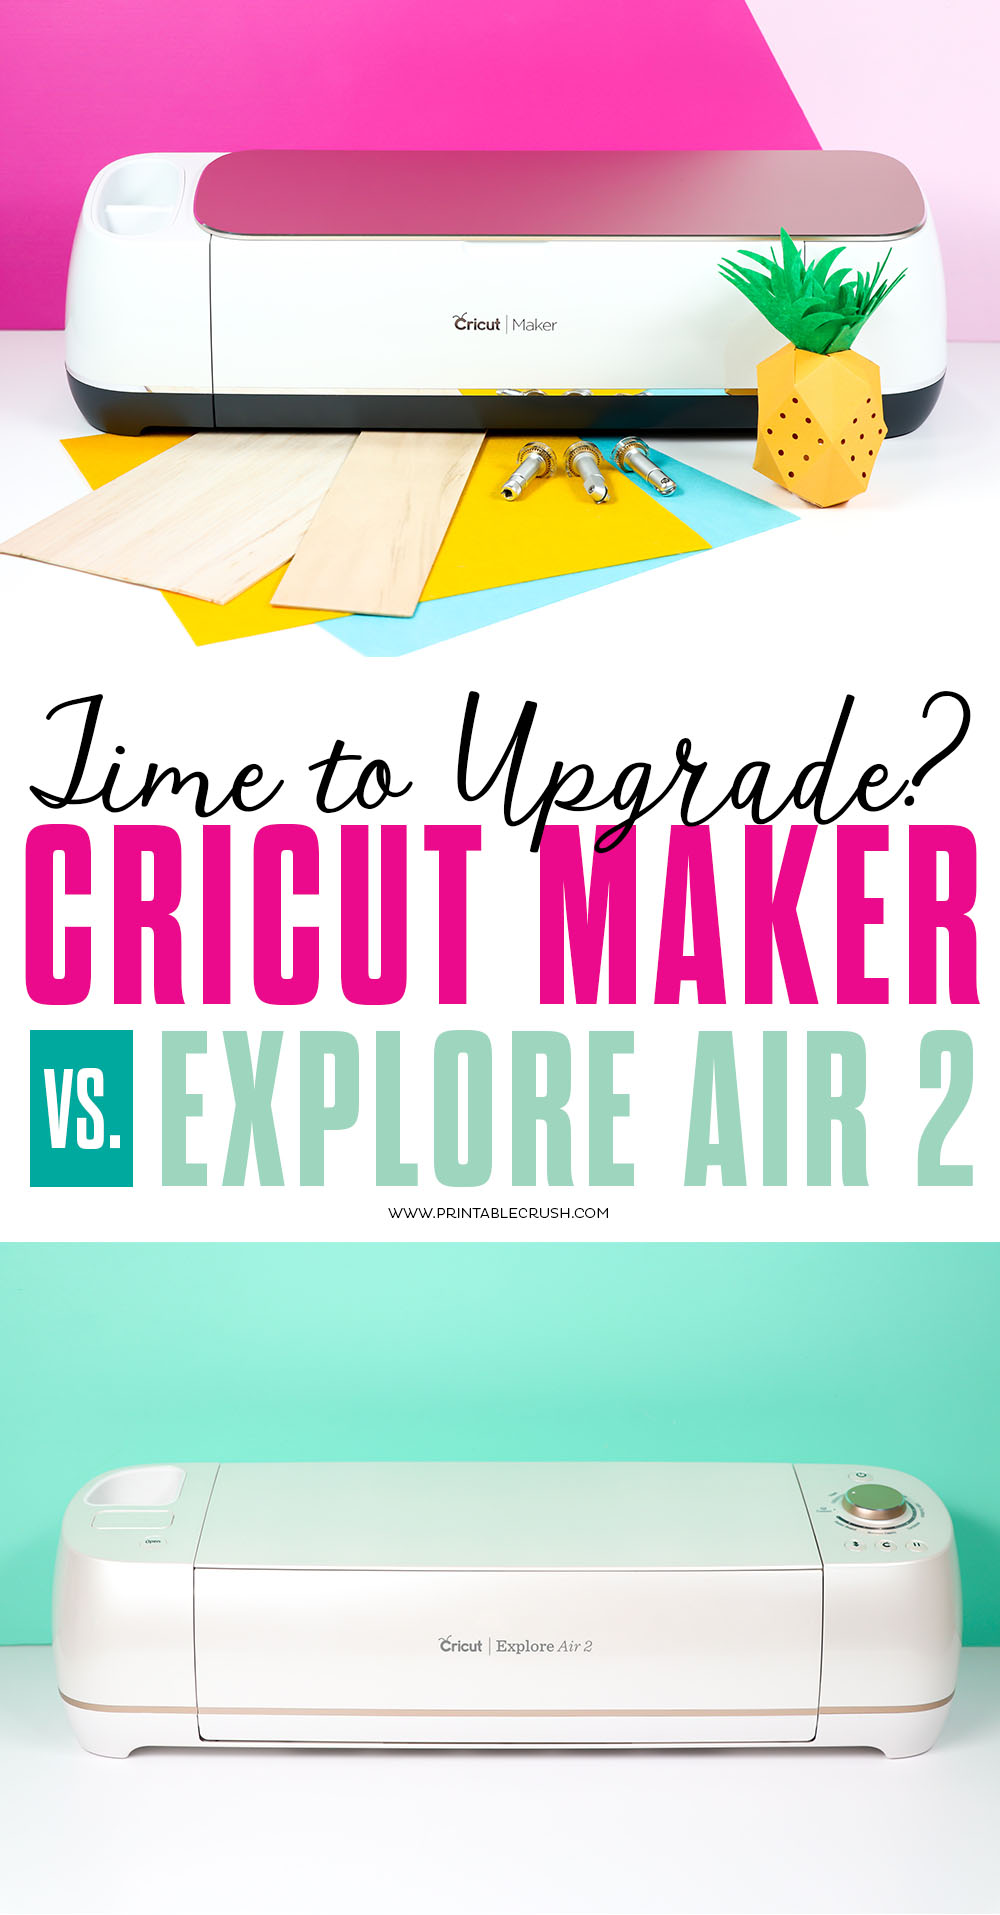 You may need to Upgrade from the Cricut Explore Air to the Cricut Maker. Check out this post on the Cricut Maker Vs. Explore Air 2 to see what the Maker can do! #cricutmade #sayitwithcricut #cricutmaker #cricutupgrade